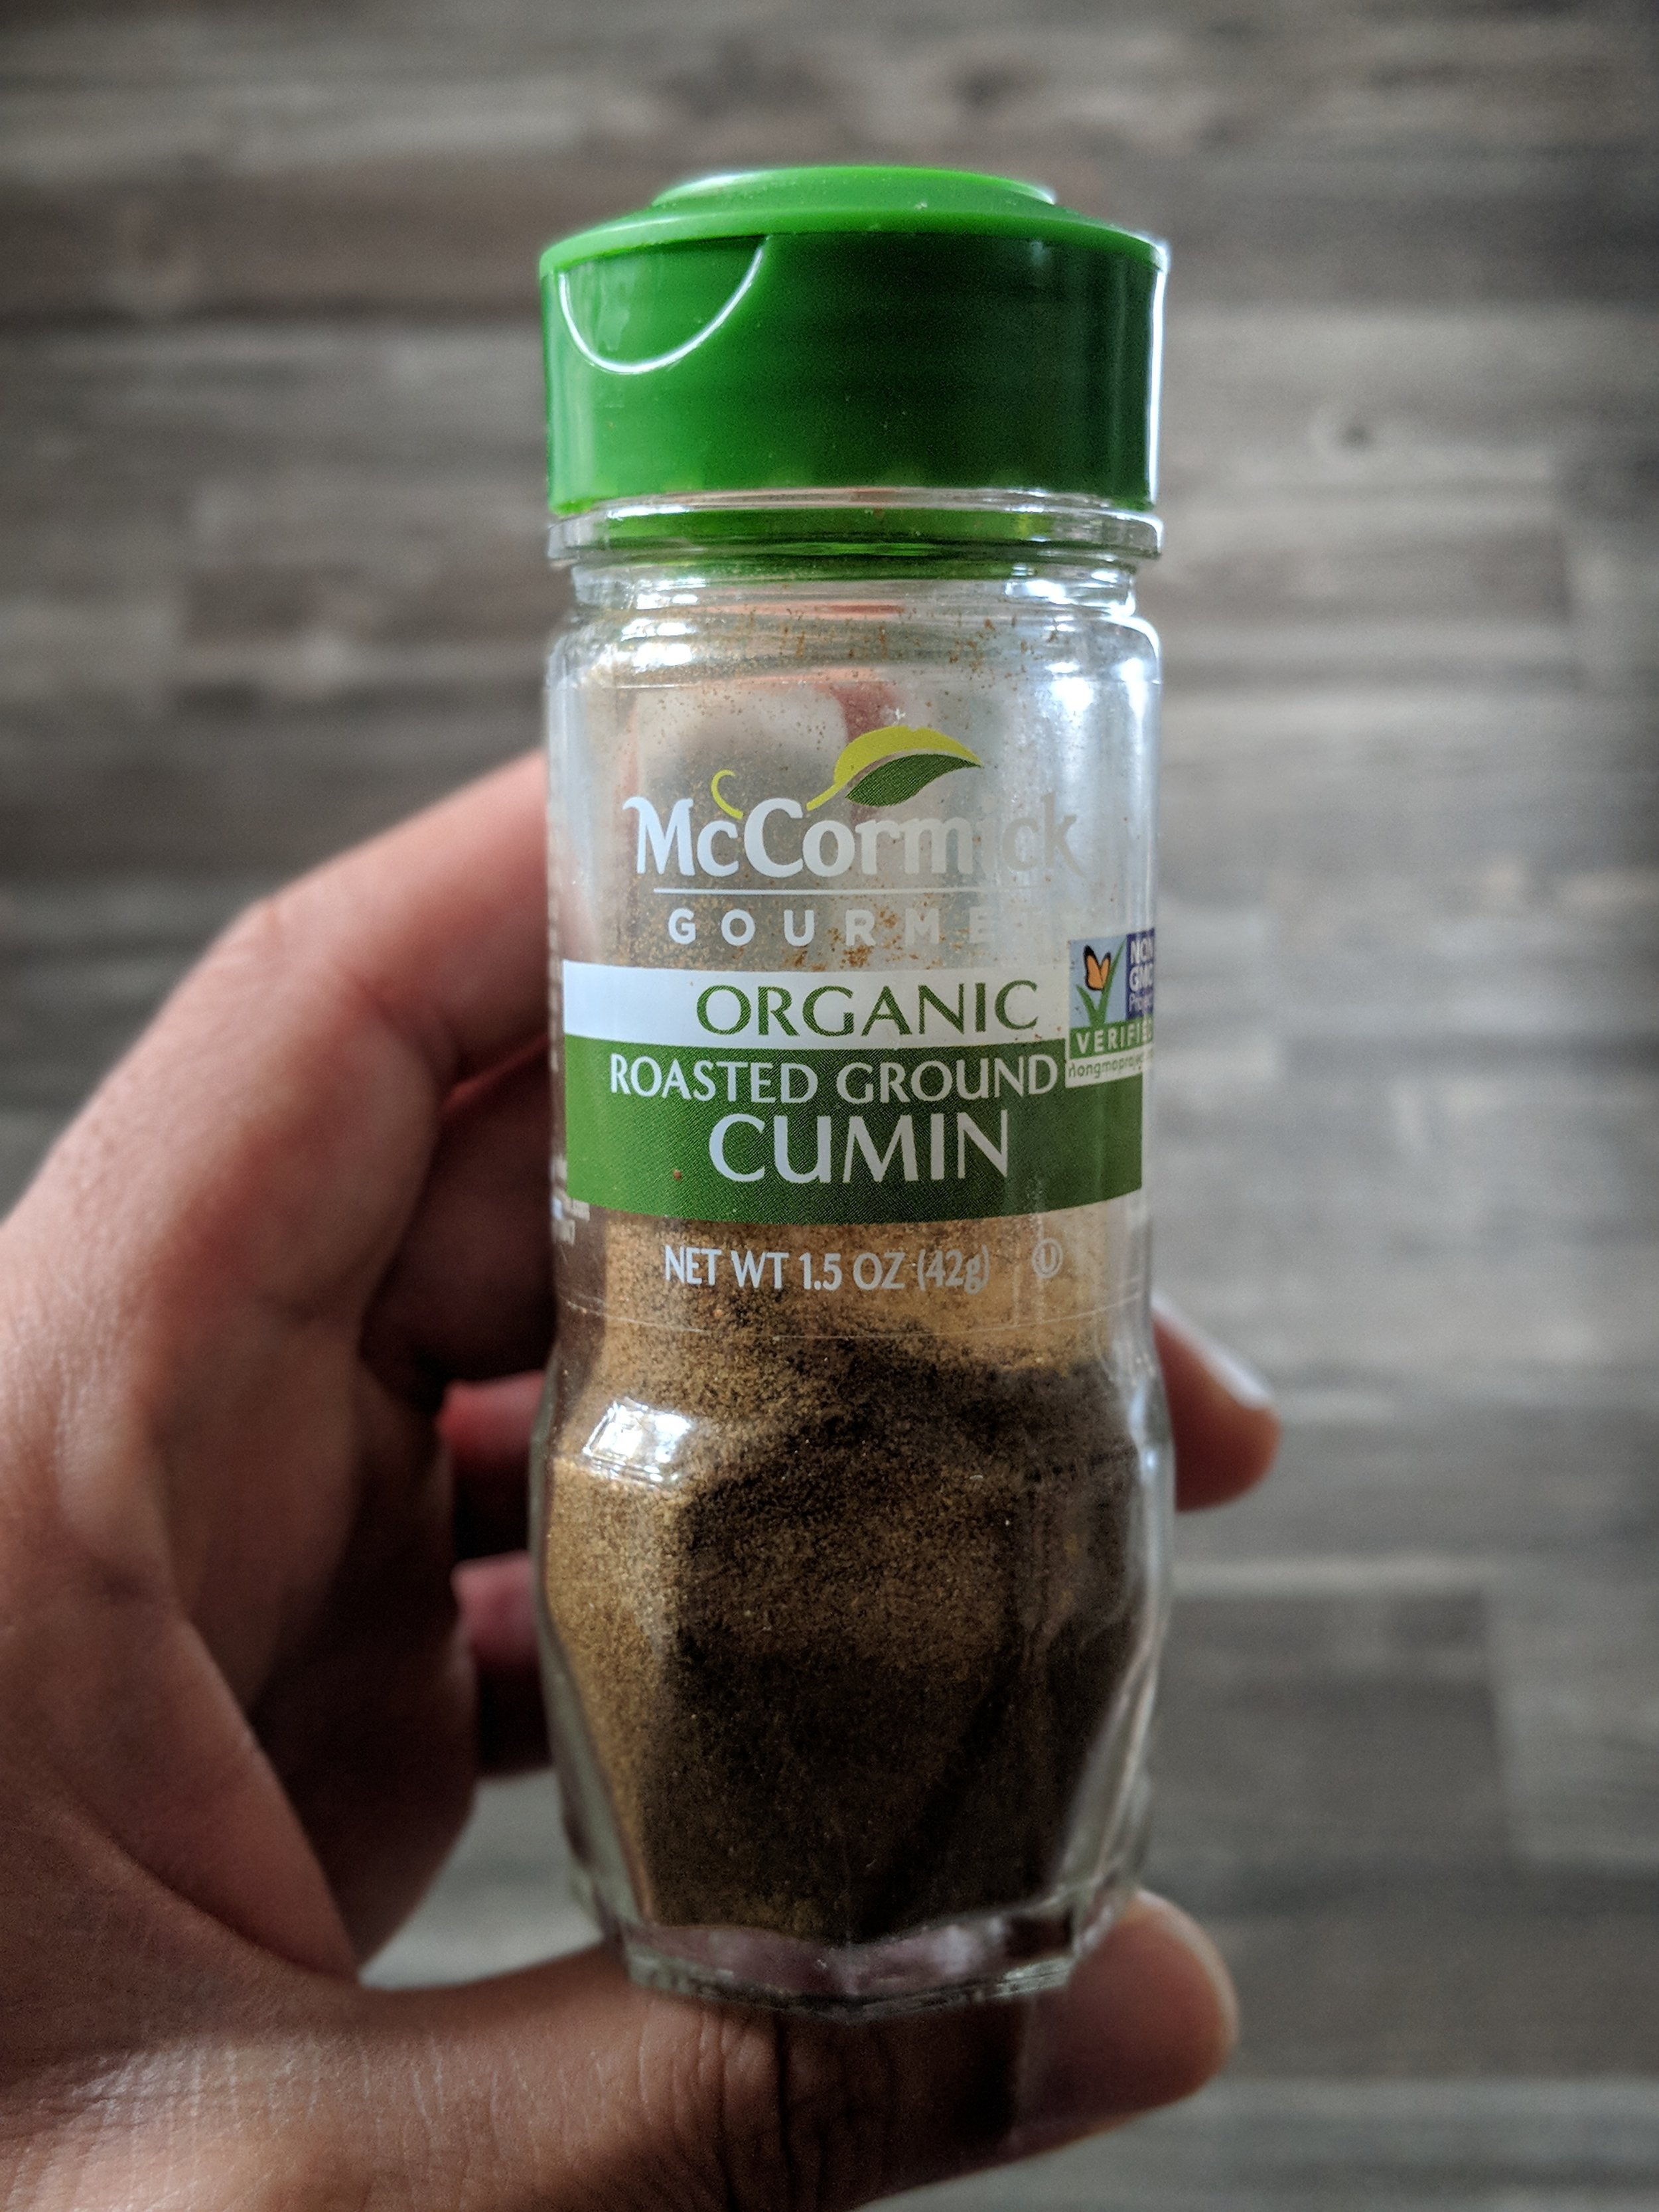 Cumin - Use it for Mexican, Spanish, or Middle Eastern dishes.